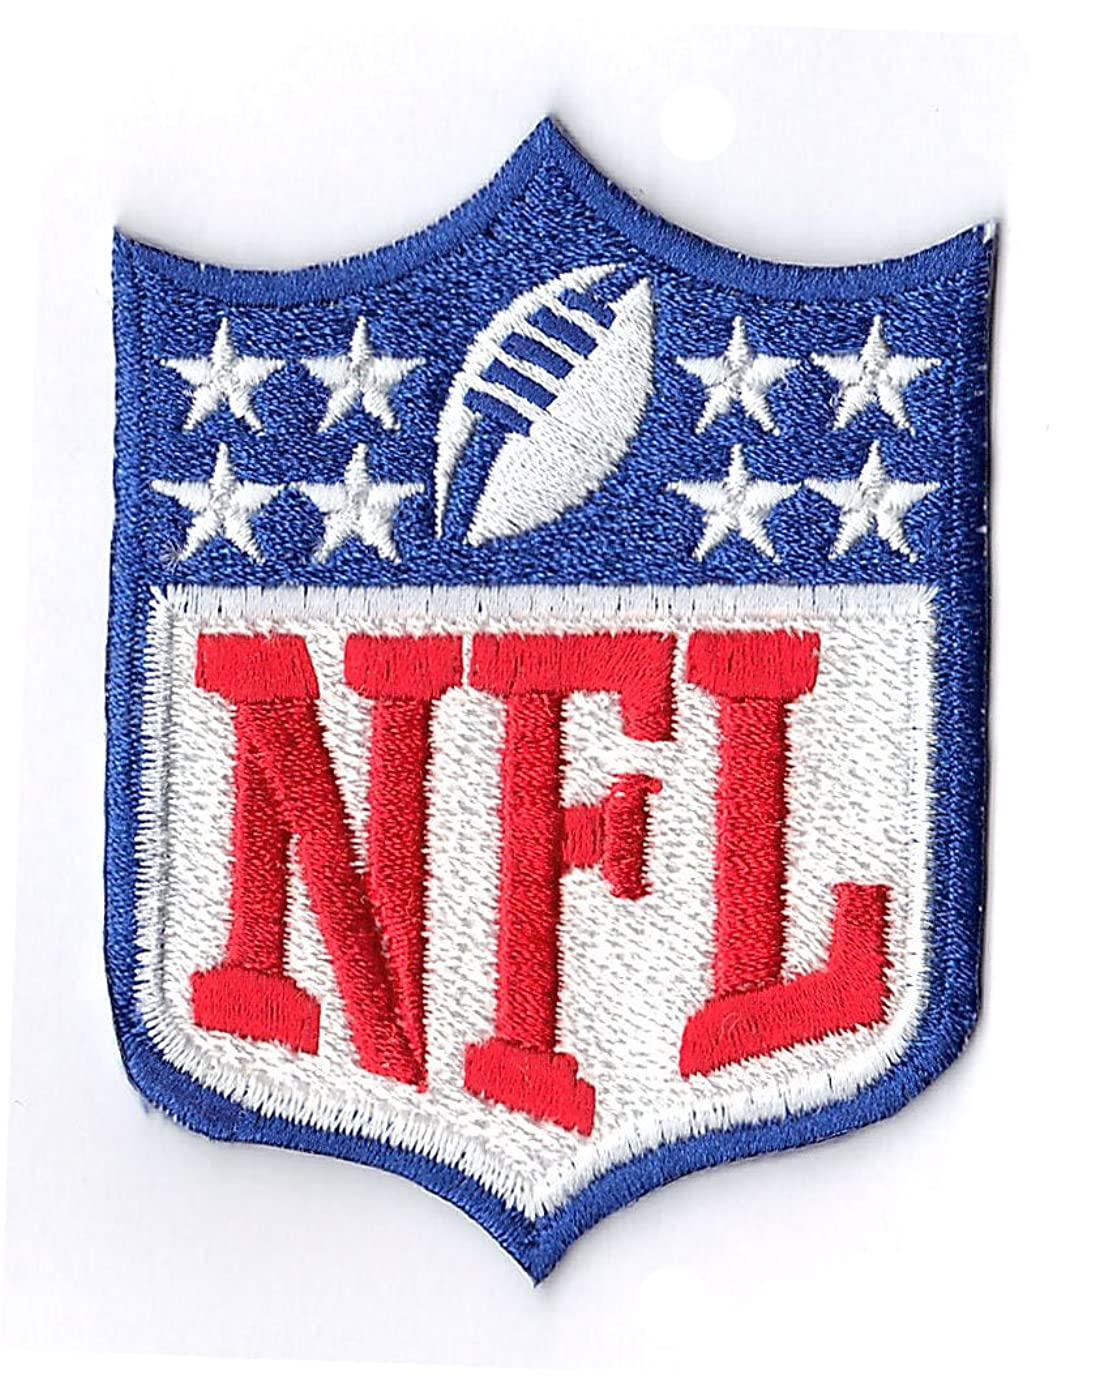 NFL SHIELD 8 Star Embroidered Logo PATCH